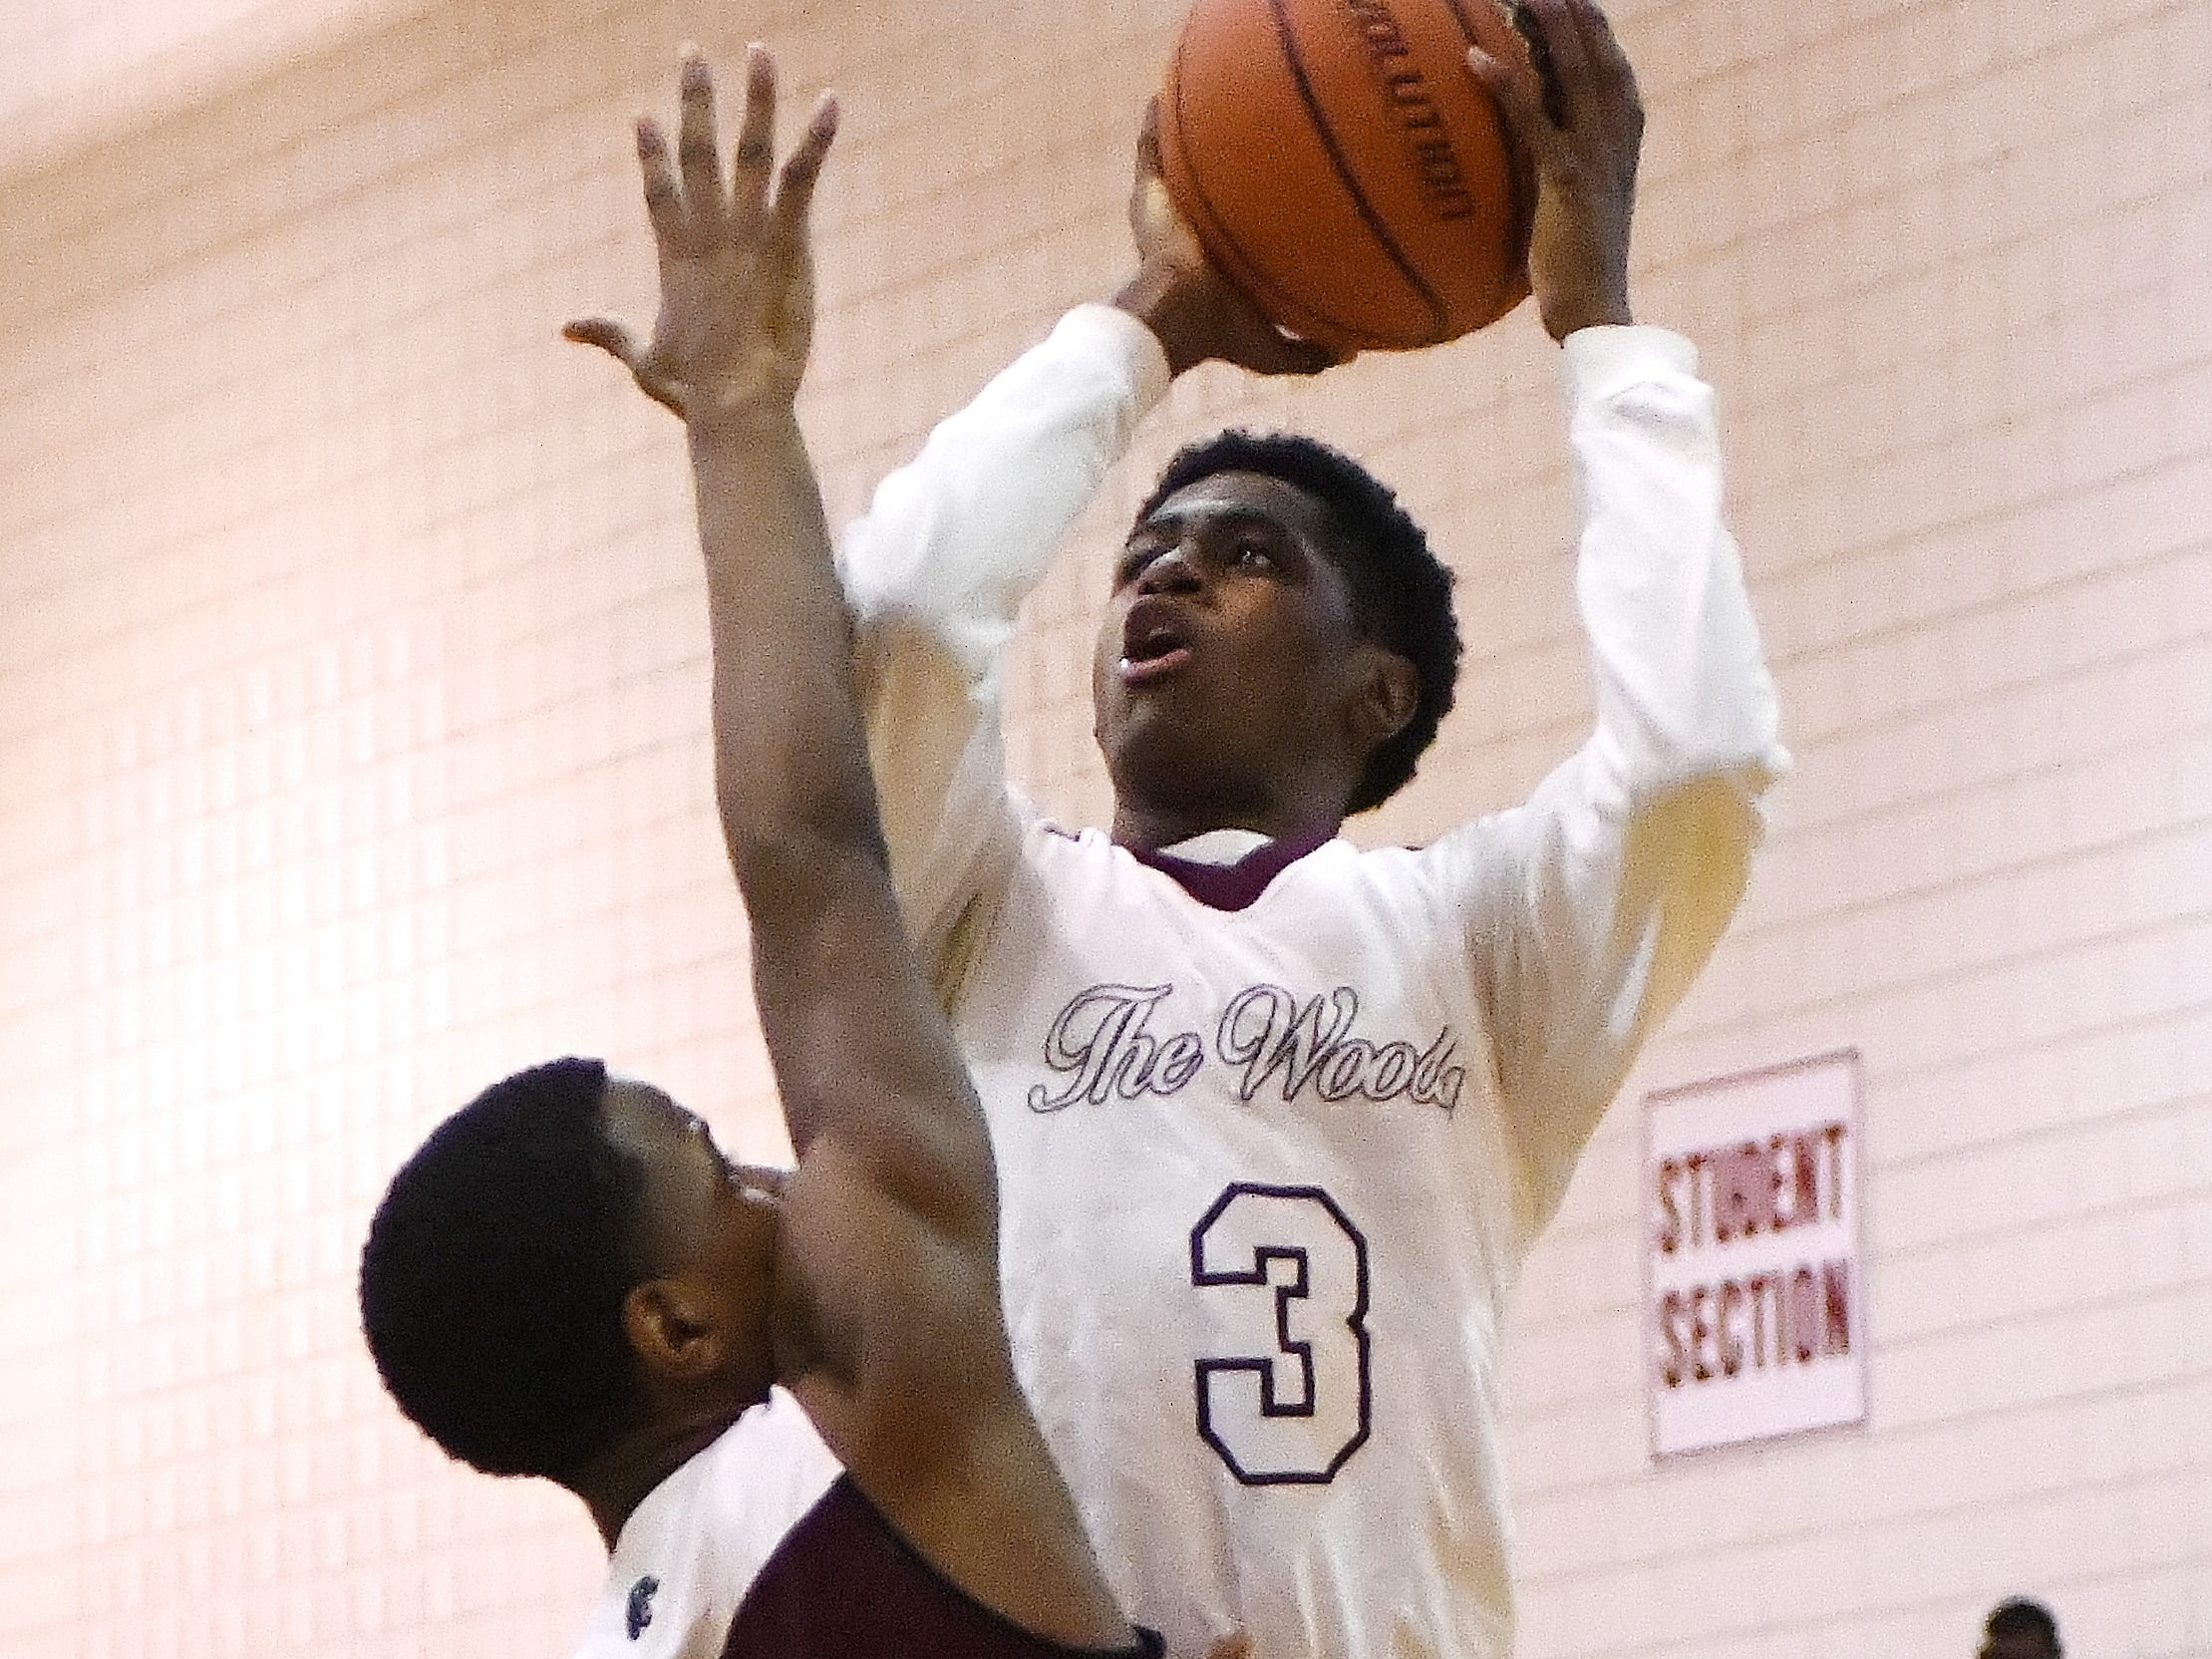 Harper Woods' Curtis Jackson puts up a shot over River Rouge's Bralin Toney in the first half.